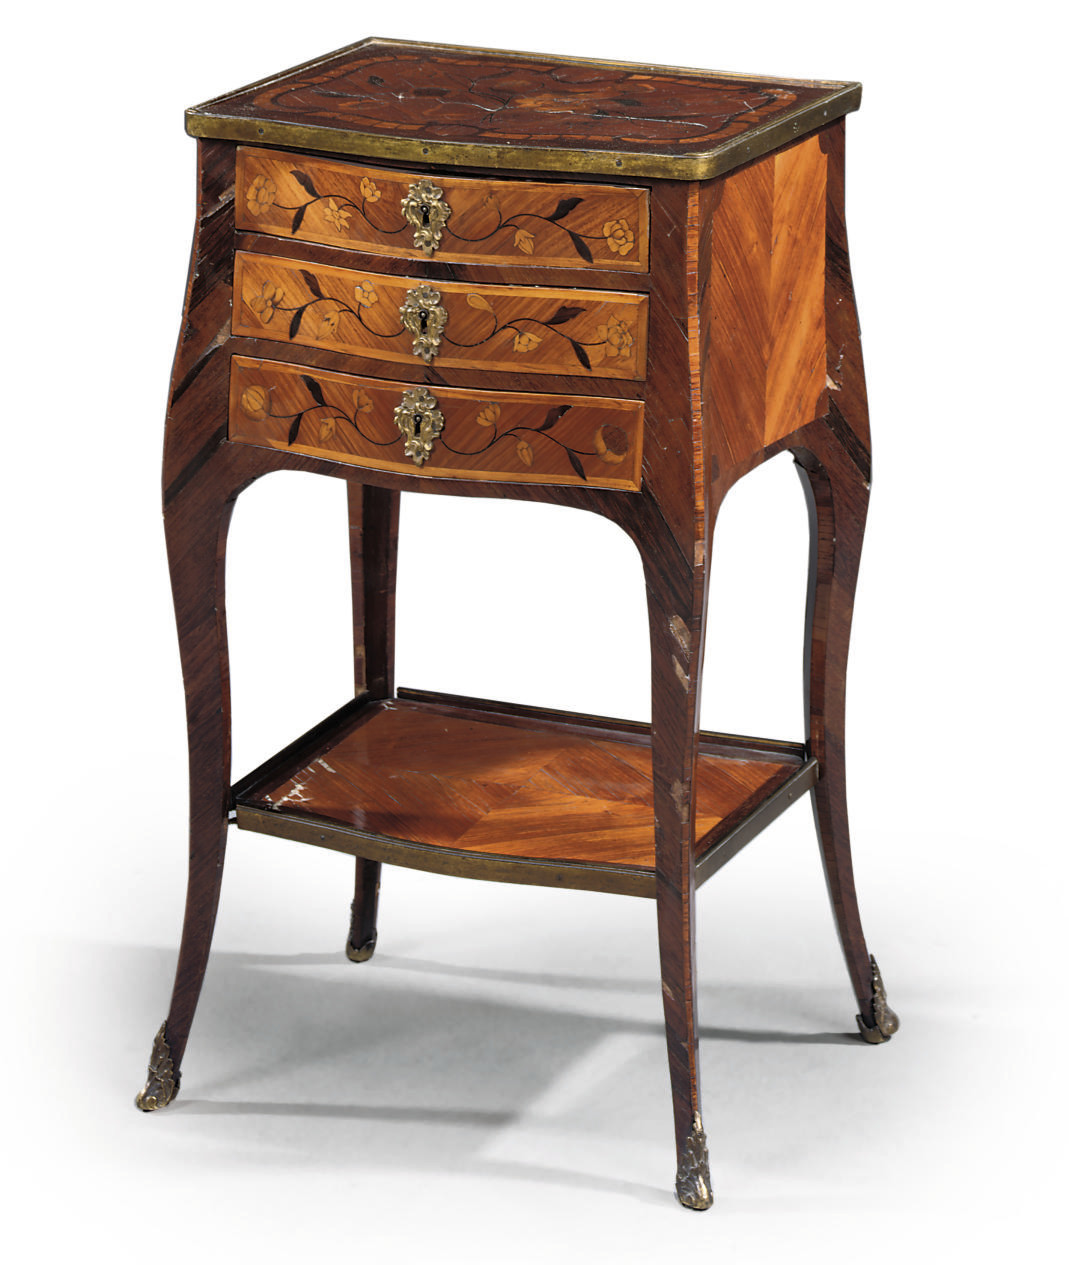 A LOUIS XV ORMOLU-MOUNTED TULIPWOOD, AMARANTH AND MARQUETRY SERPENTINE TABLE DE SALON